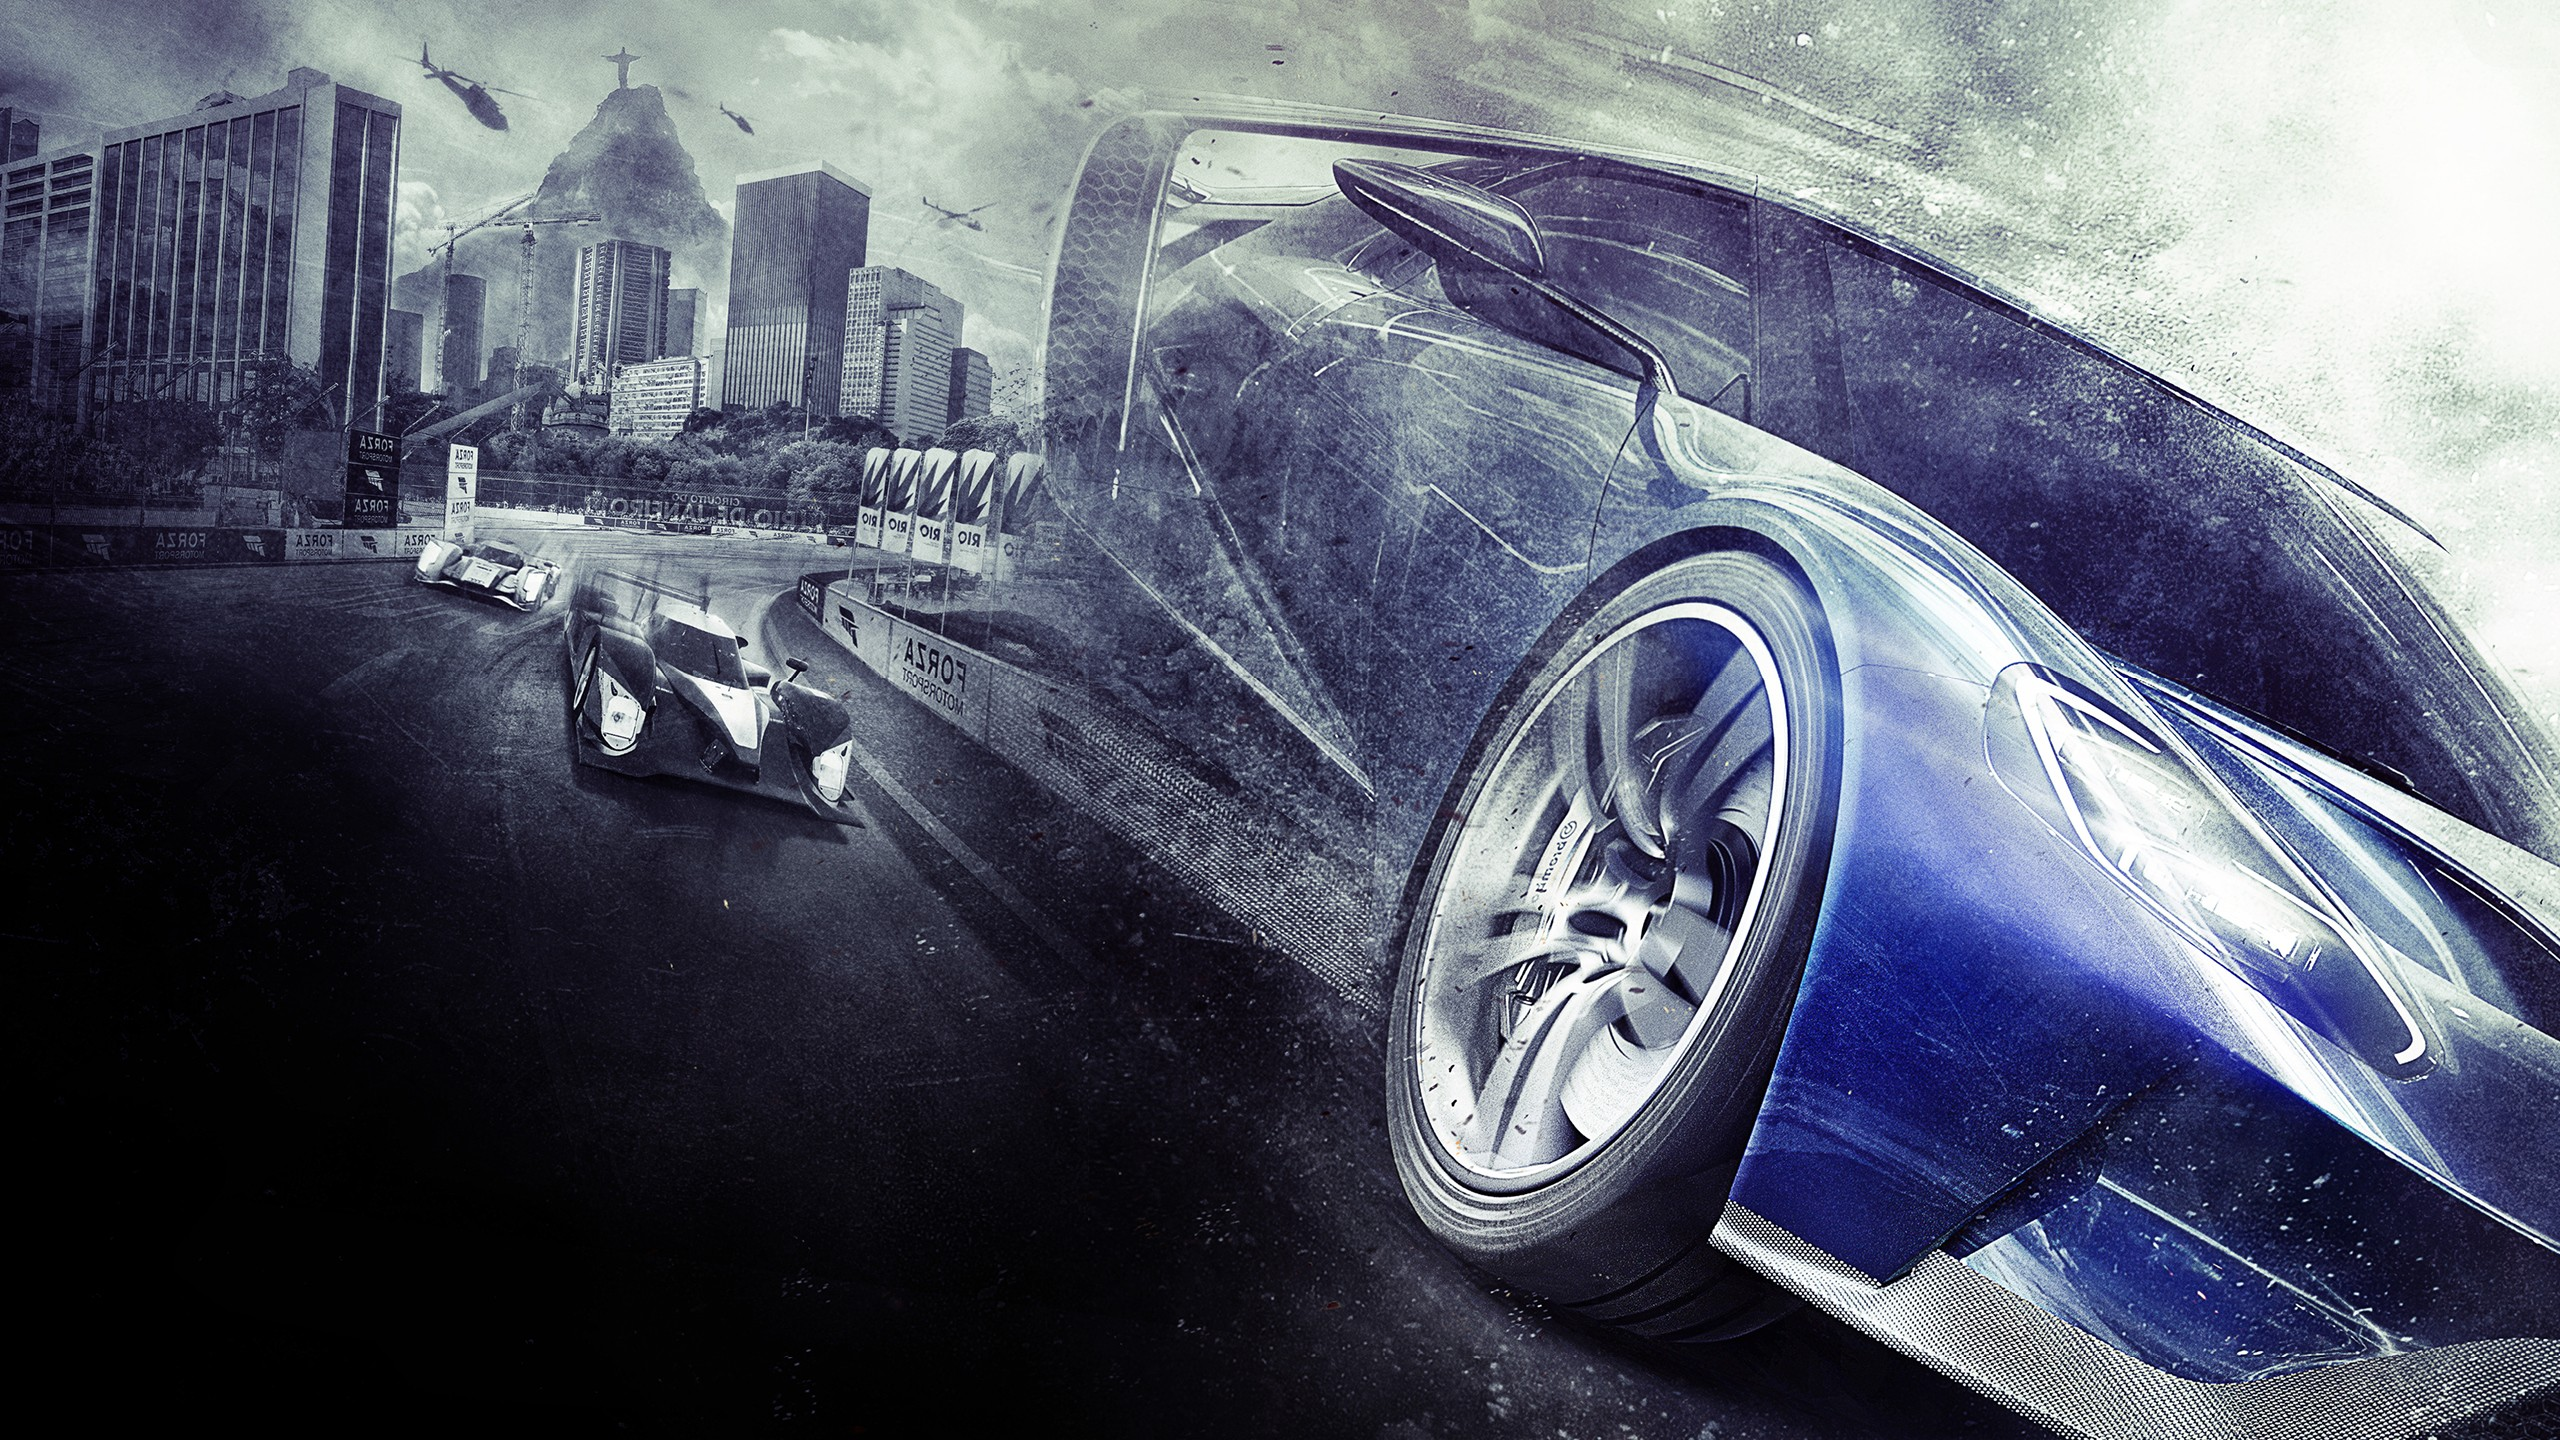 Forza motosport 6 hd games 4k wallpapers images backgrounds photos and pictures - Forza logo wallpaper ...